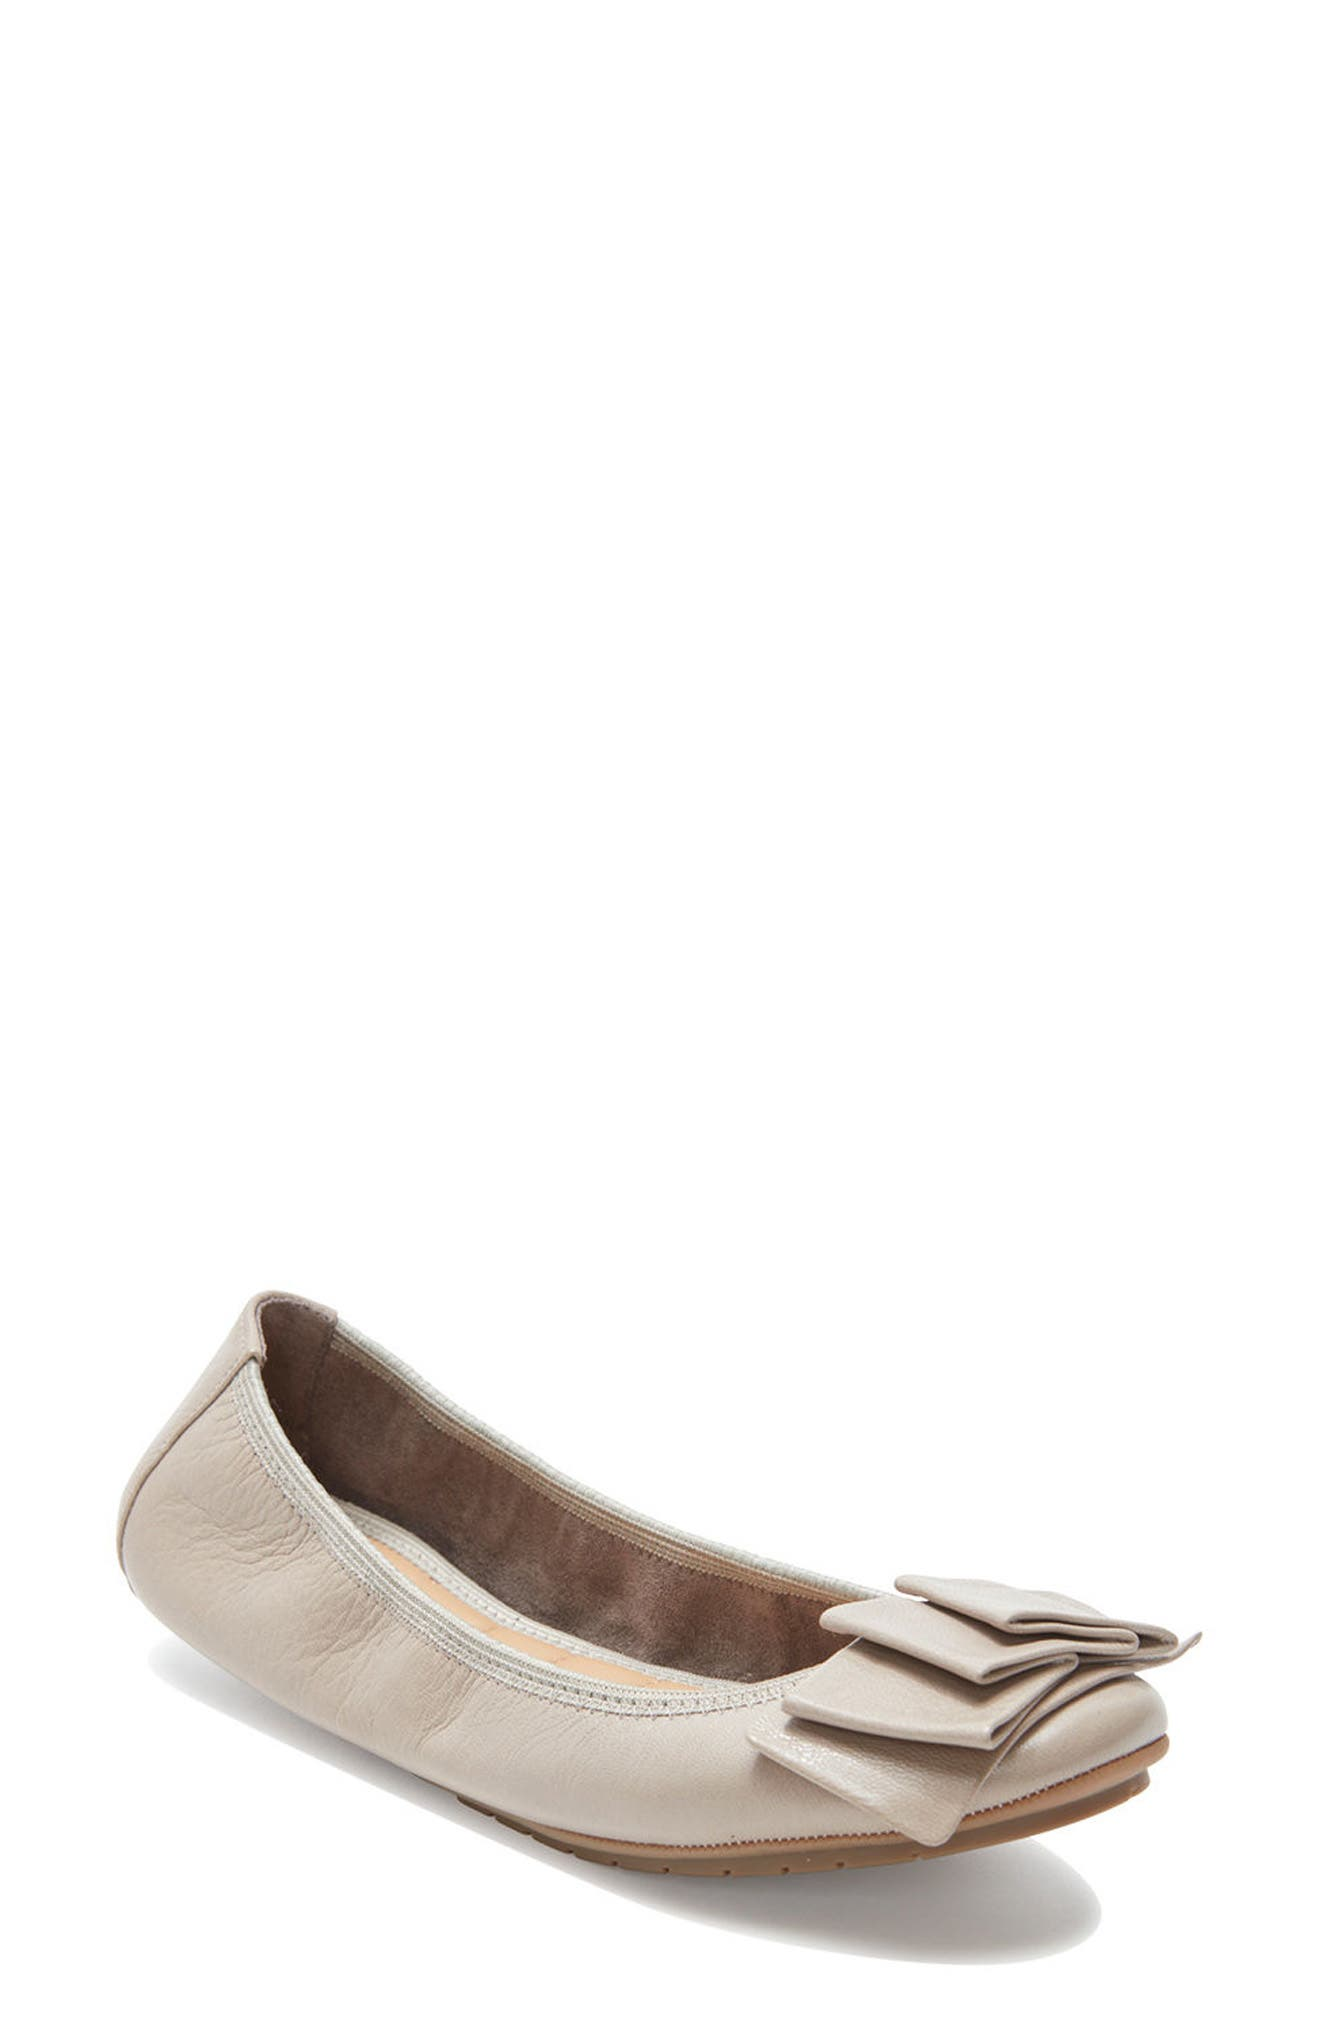 'Lilyana 2.0' Flat,                         Main,                         color, LIGHT GREY LEATHER